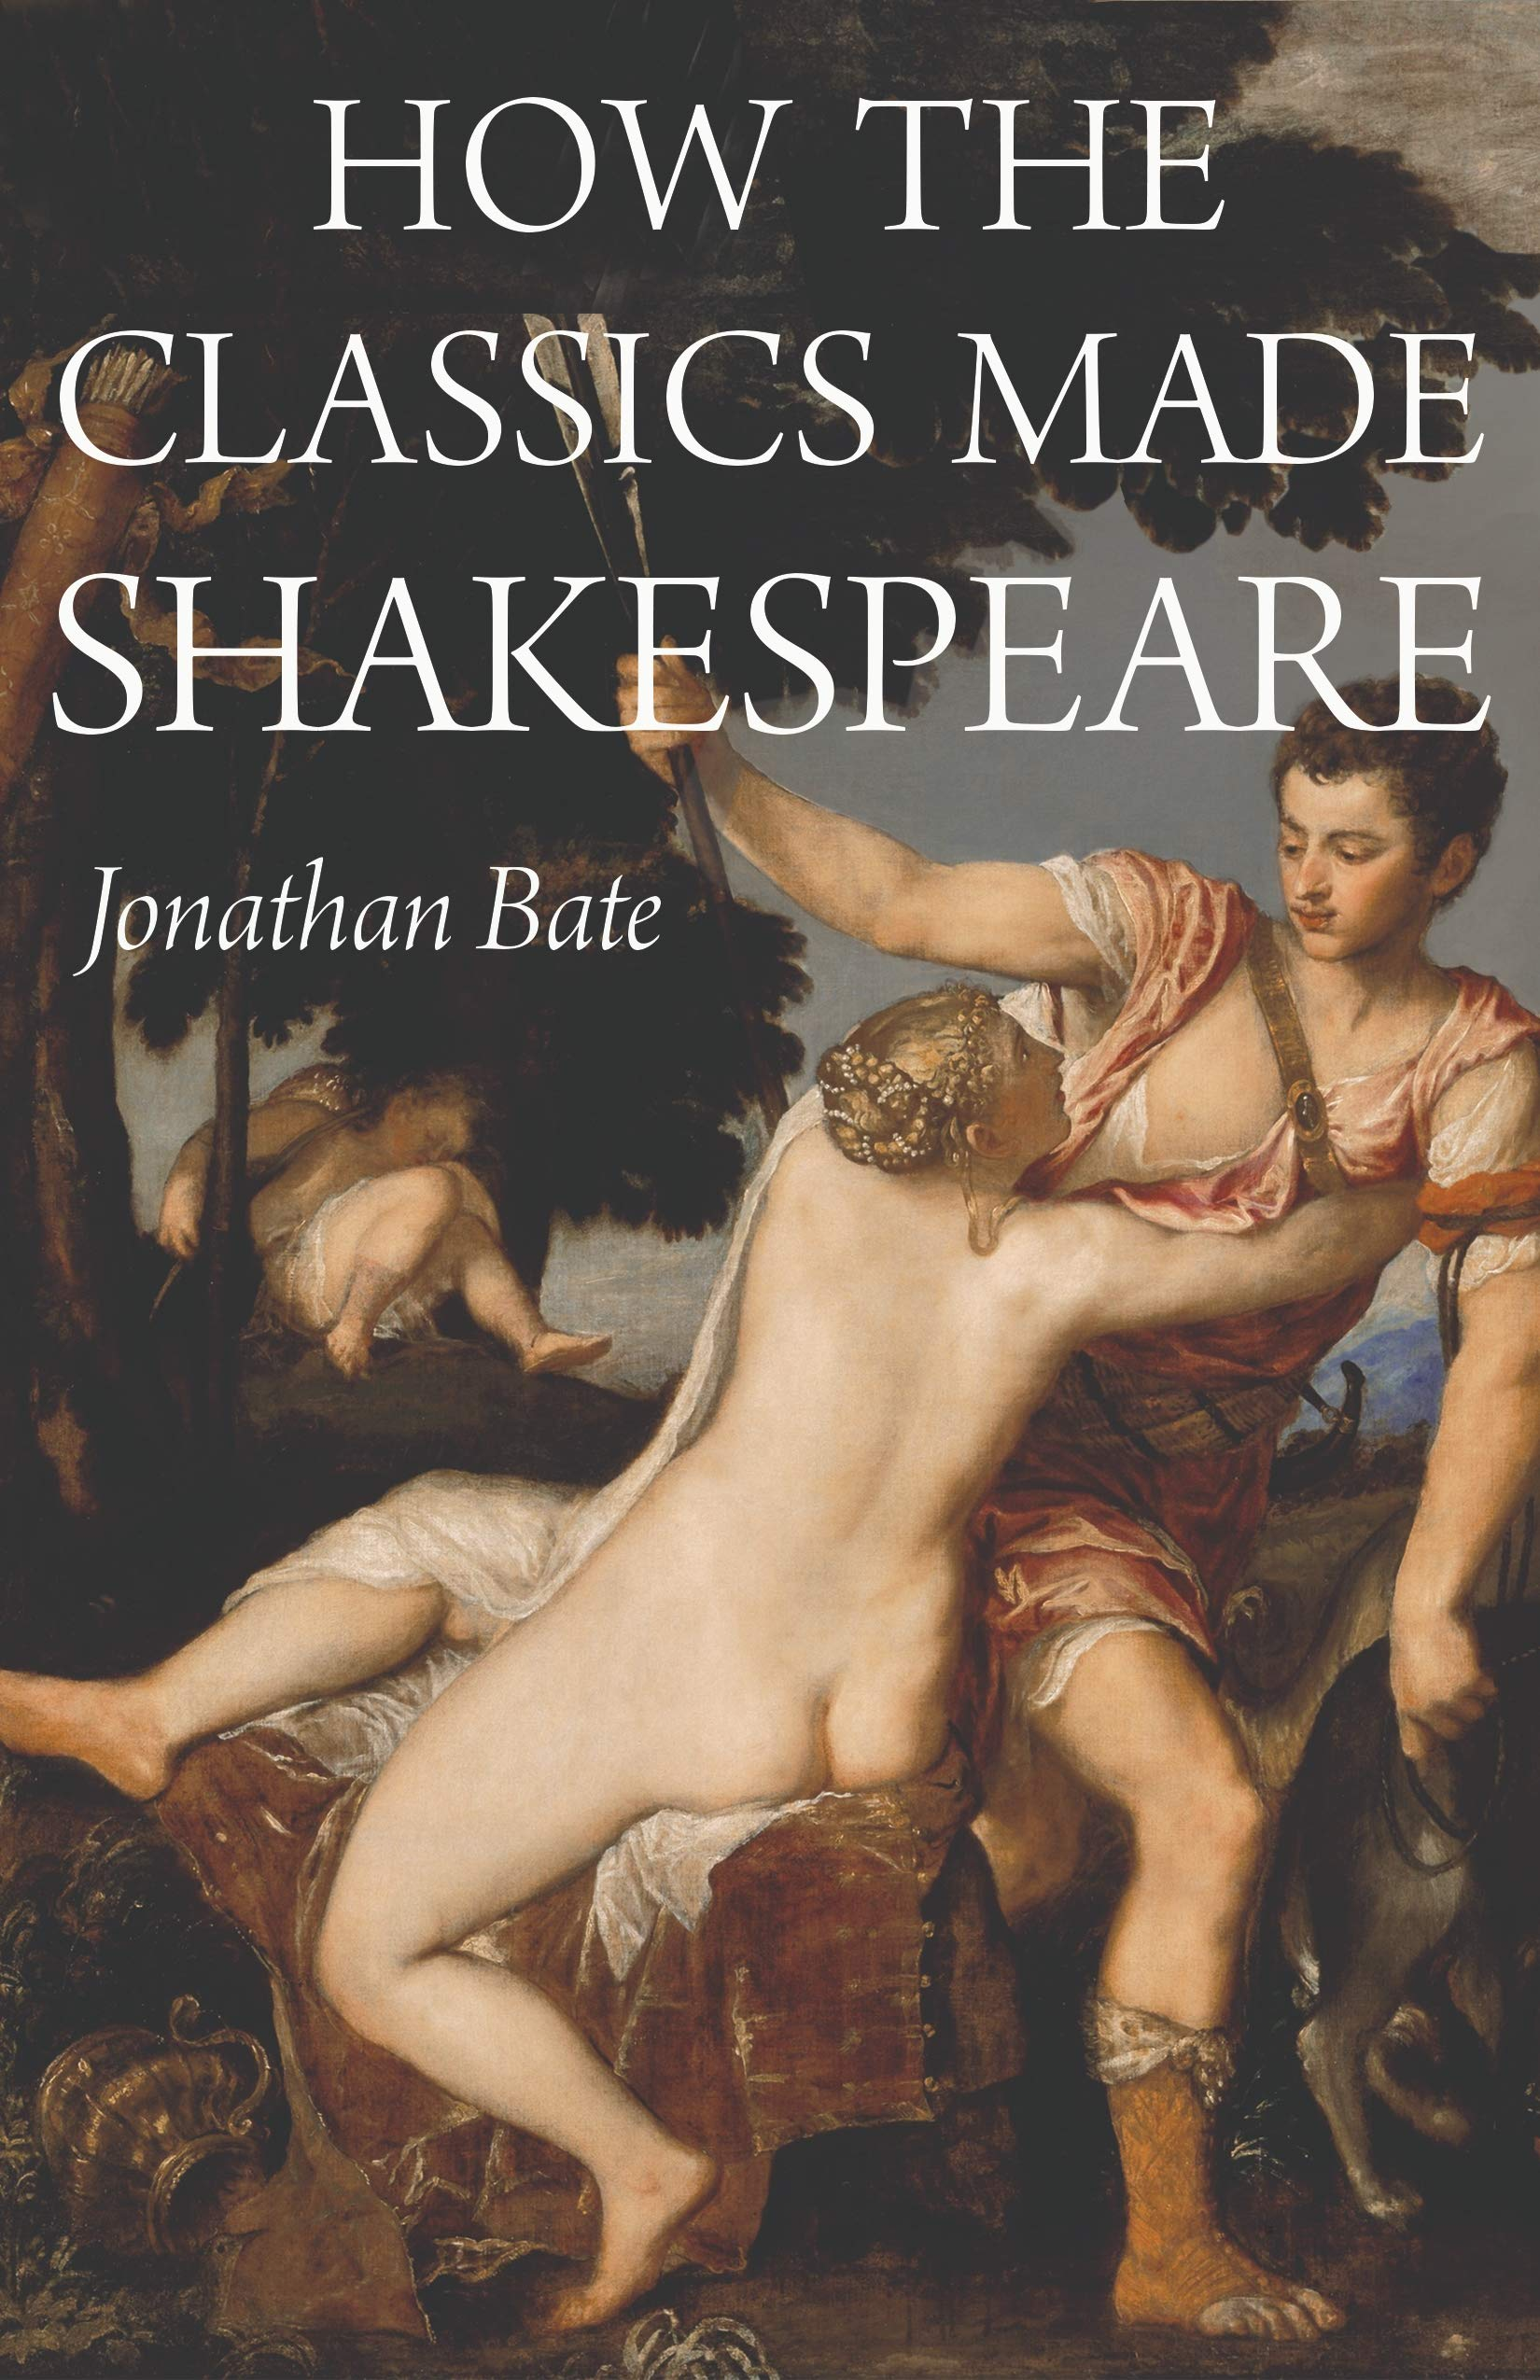 How the Classics Made Shakespeare (E. H. Gombrich Lecture Series) Hardcover  – 14 May 2019